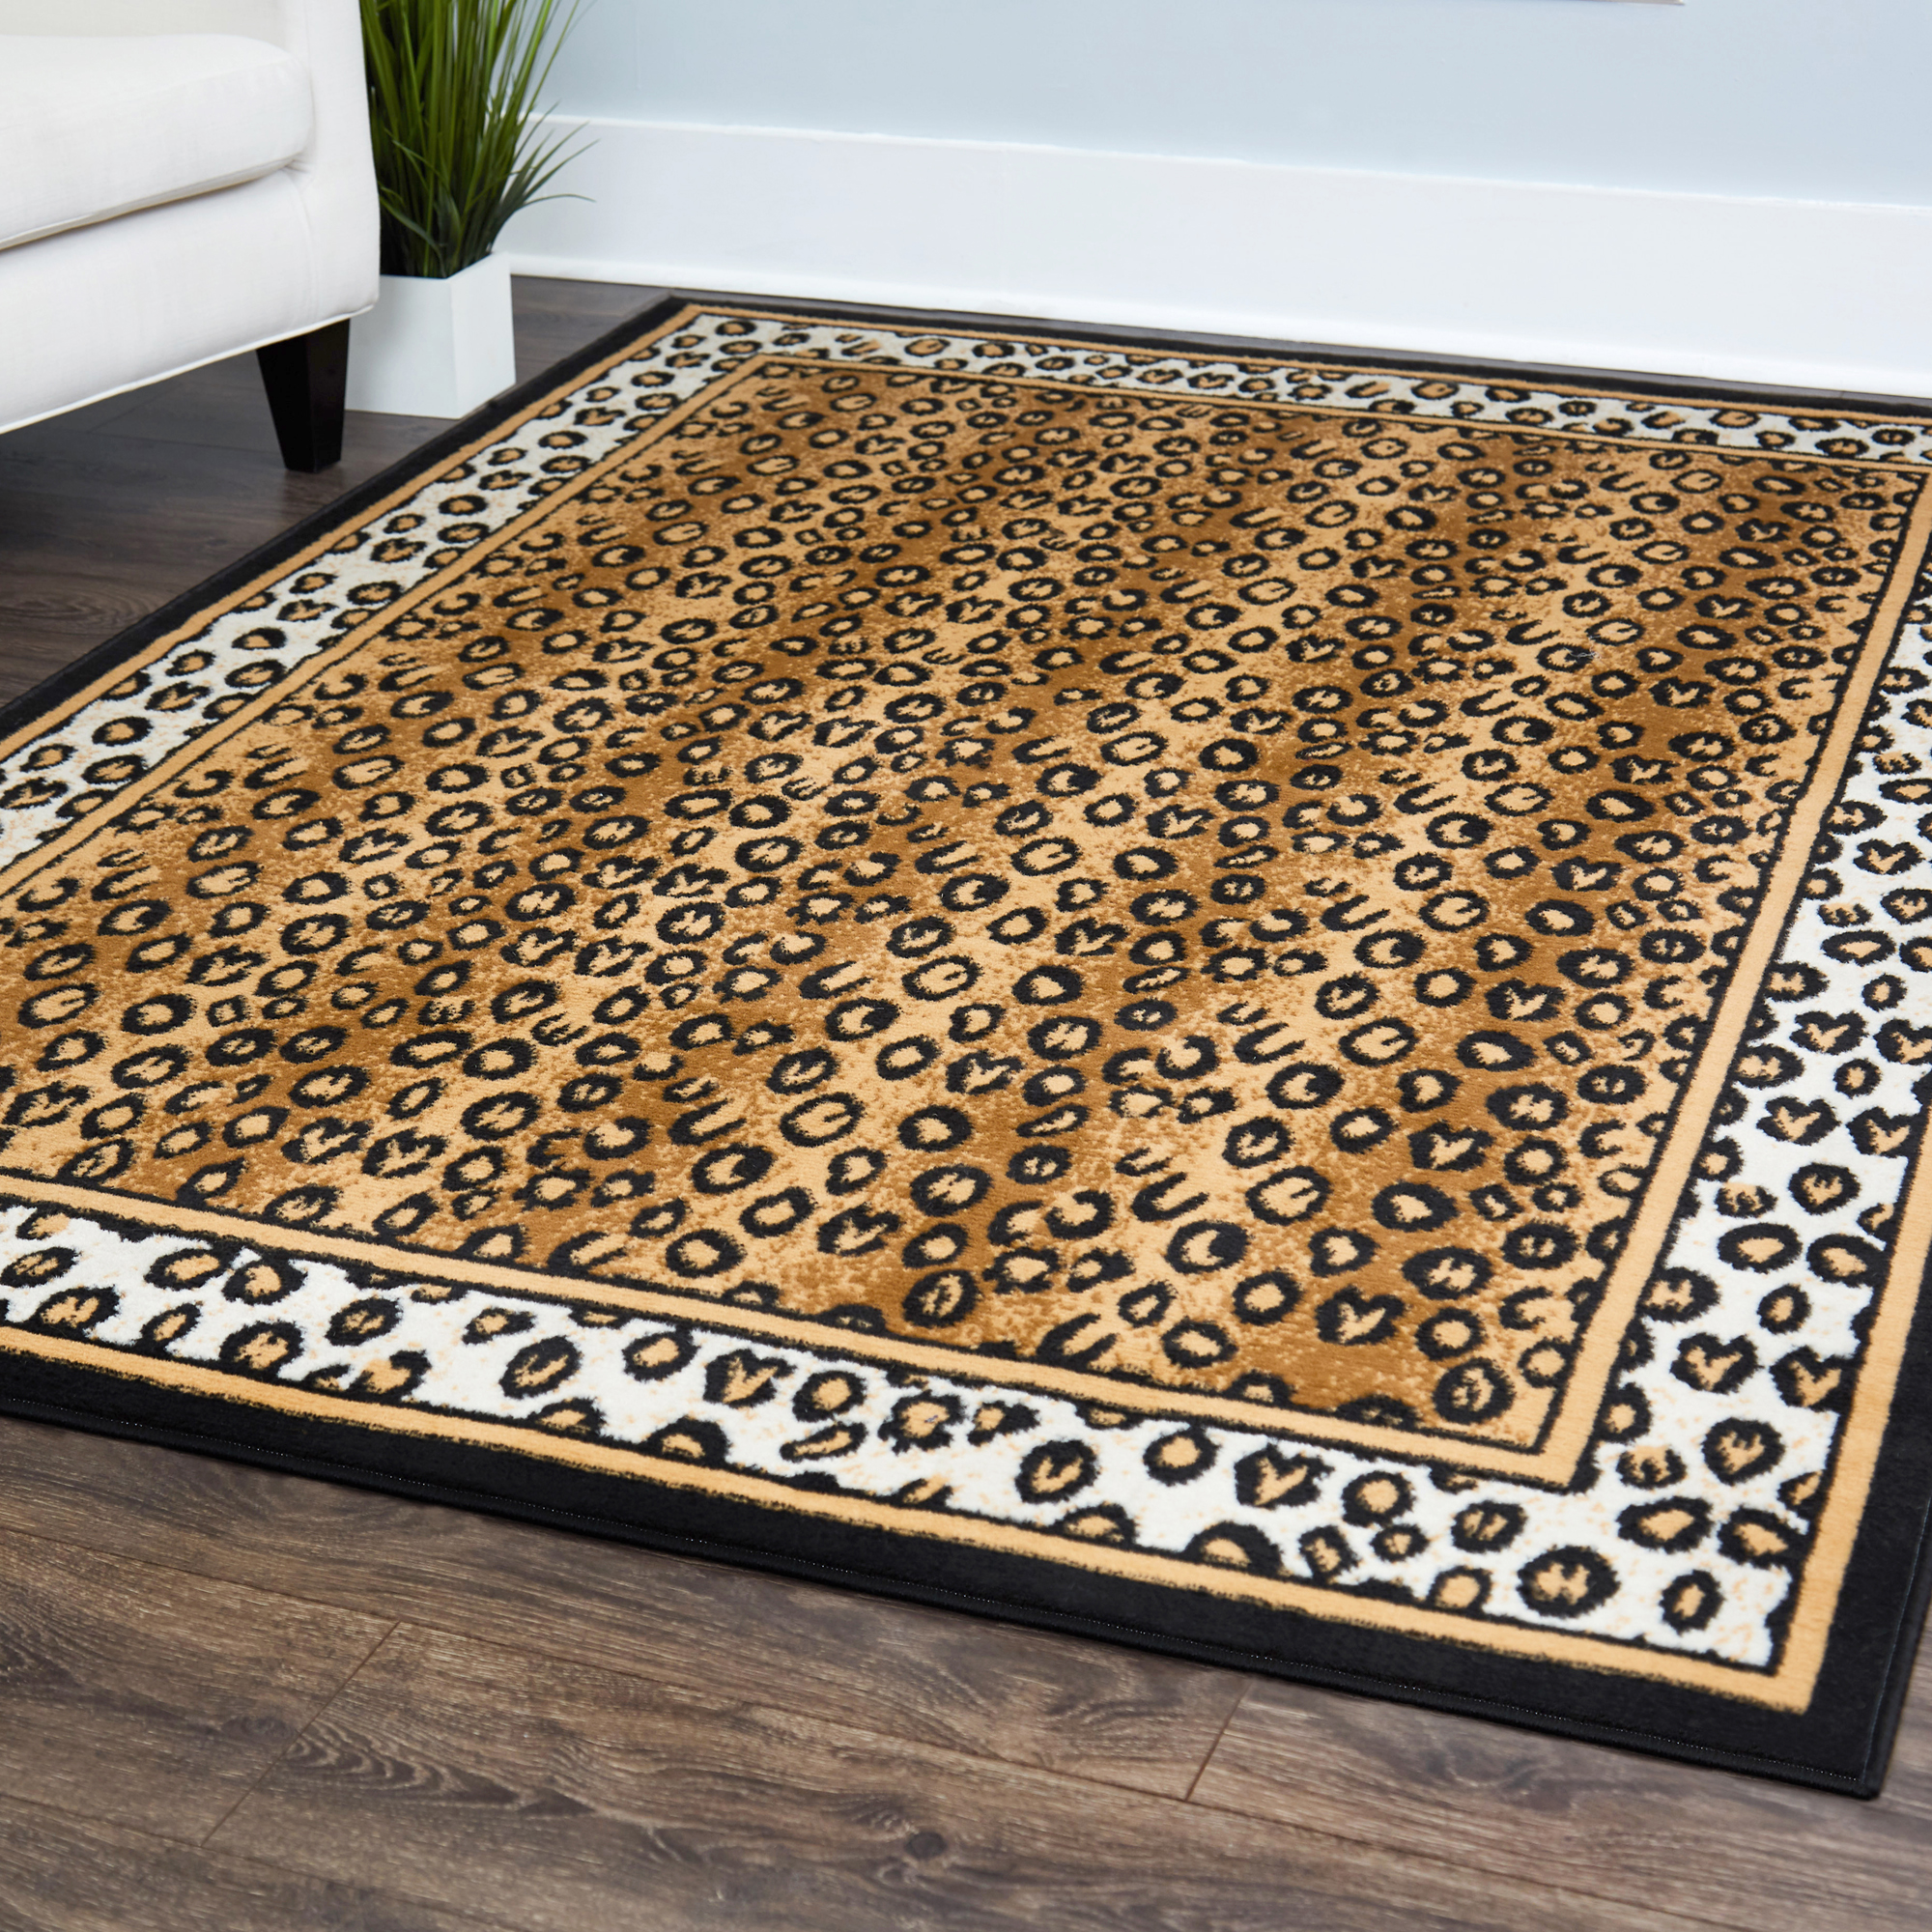 rug depot square rugs mohawk gold trend new photos of home improvement beautiful impressive june stylish brown area x pictures flooring